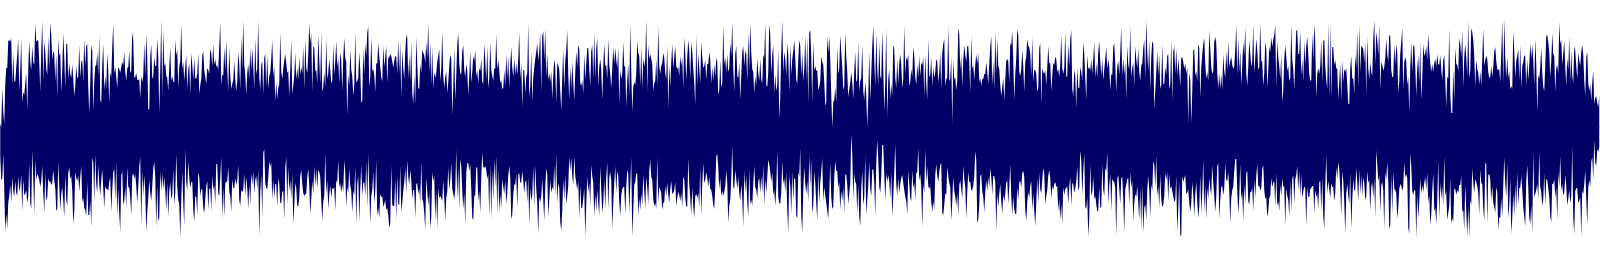 waveform of track #144137